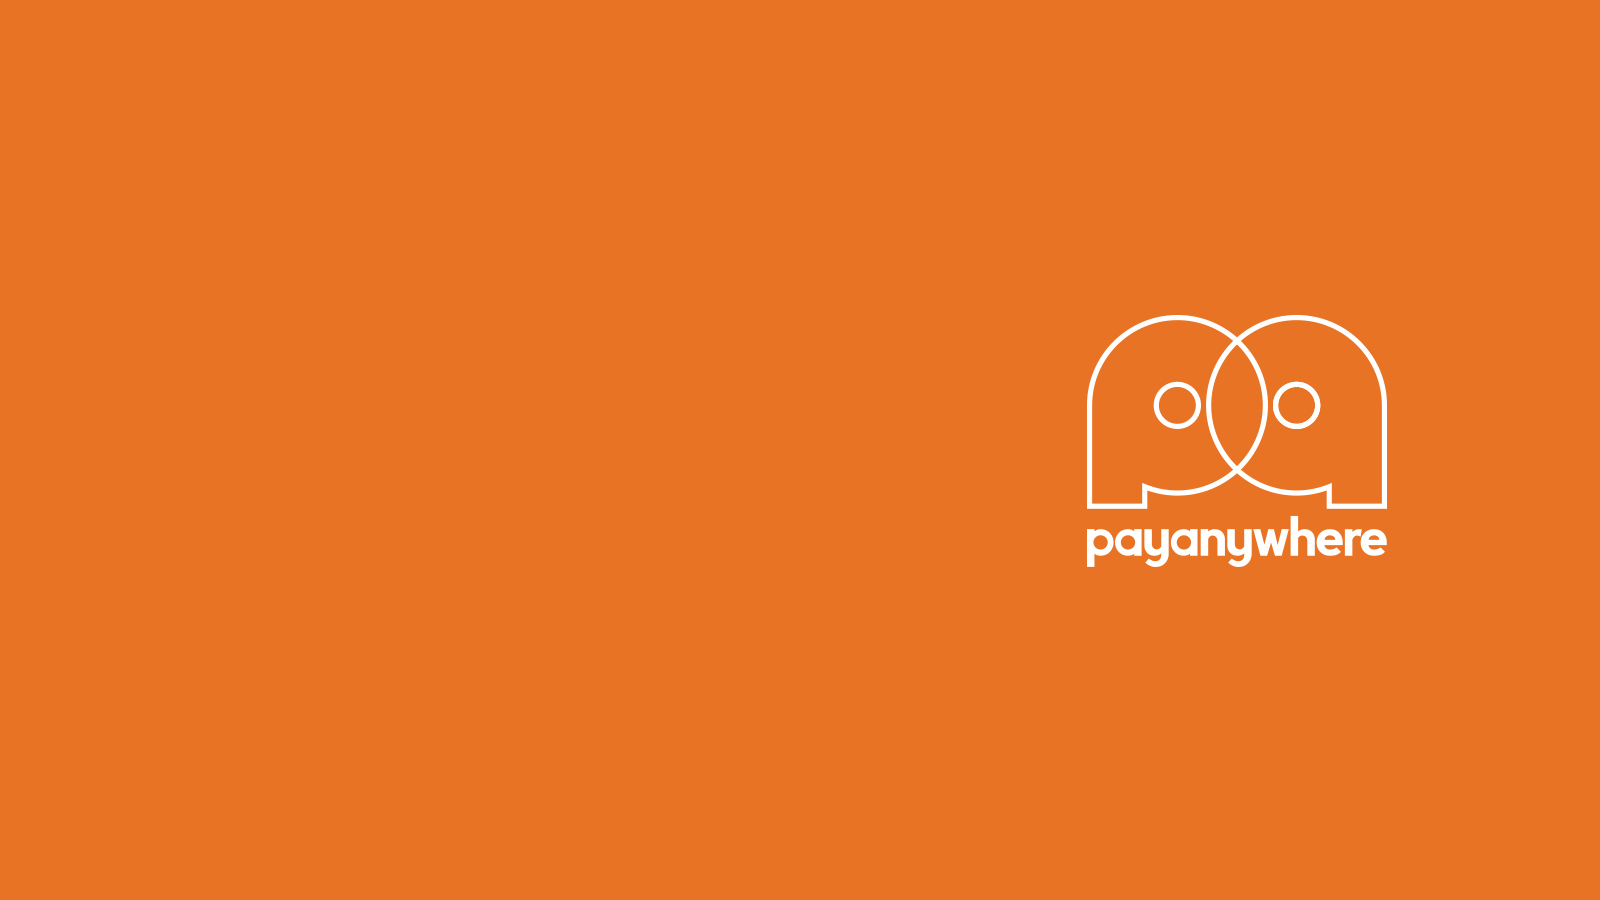 Payanywhere logo with the phrase payanywhere.